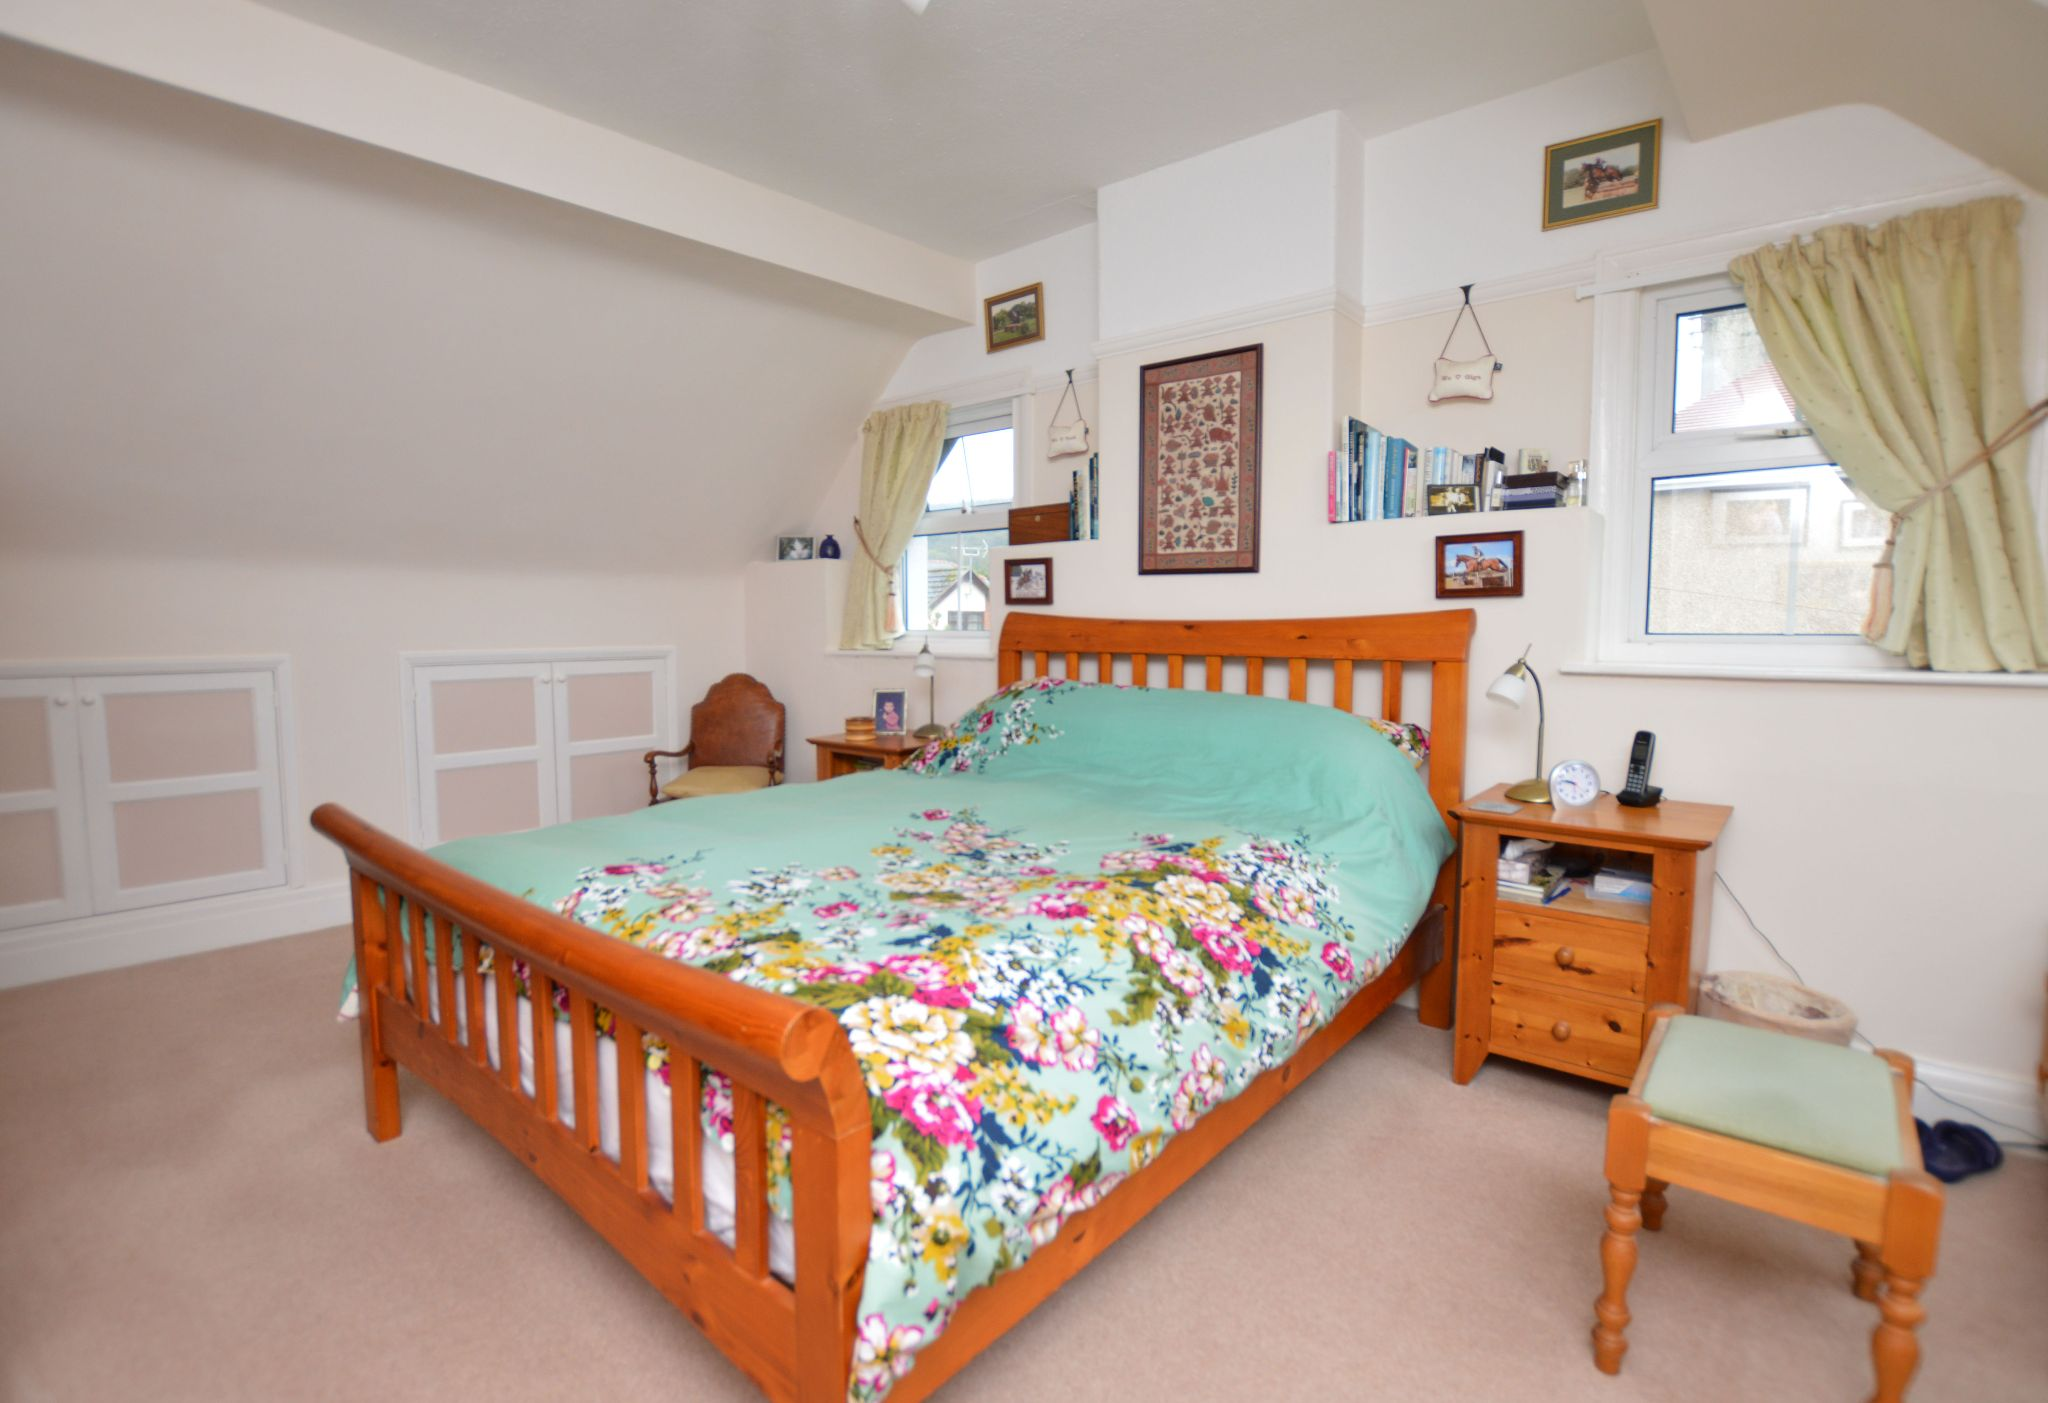 4 bedroom detached house For Sale in Abergele - Bedroom 1